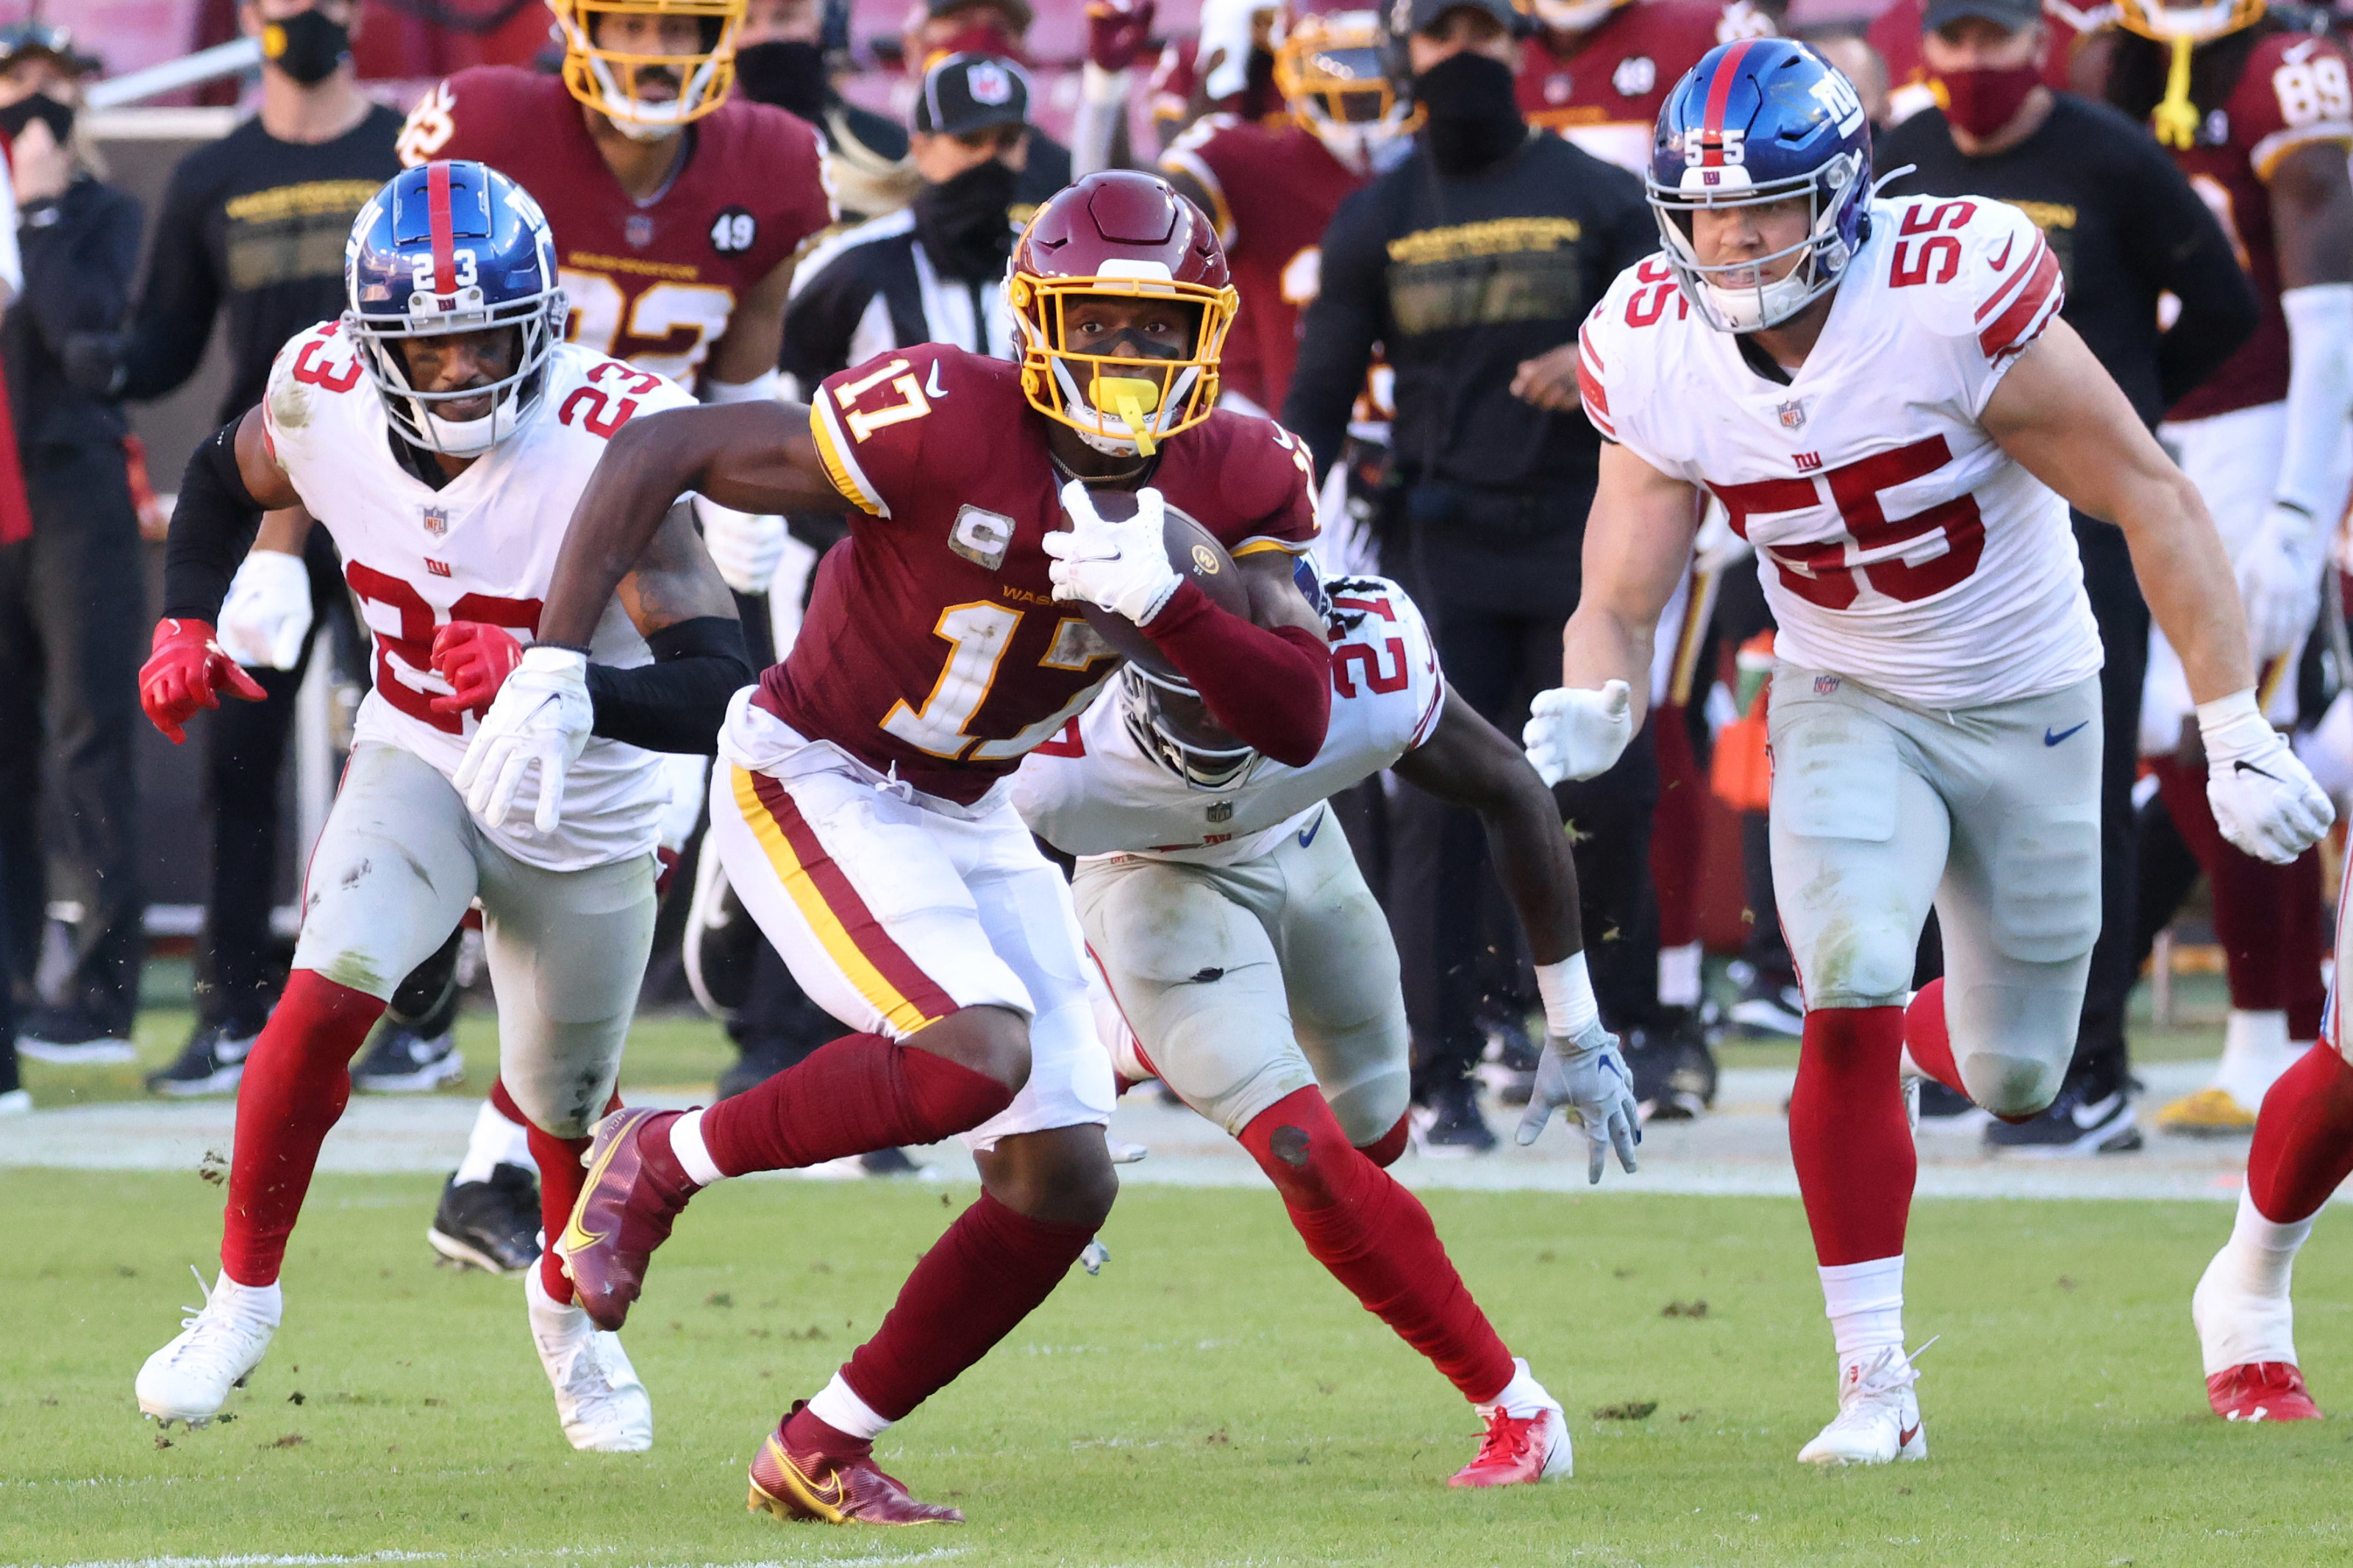 Washington Football Team: Studs and duds from Week 9 loss to Giants - Page 2